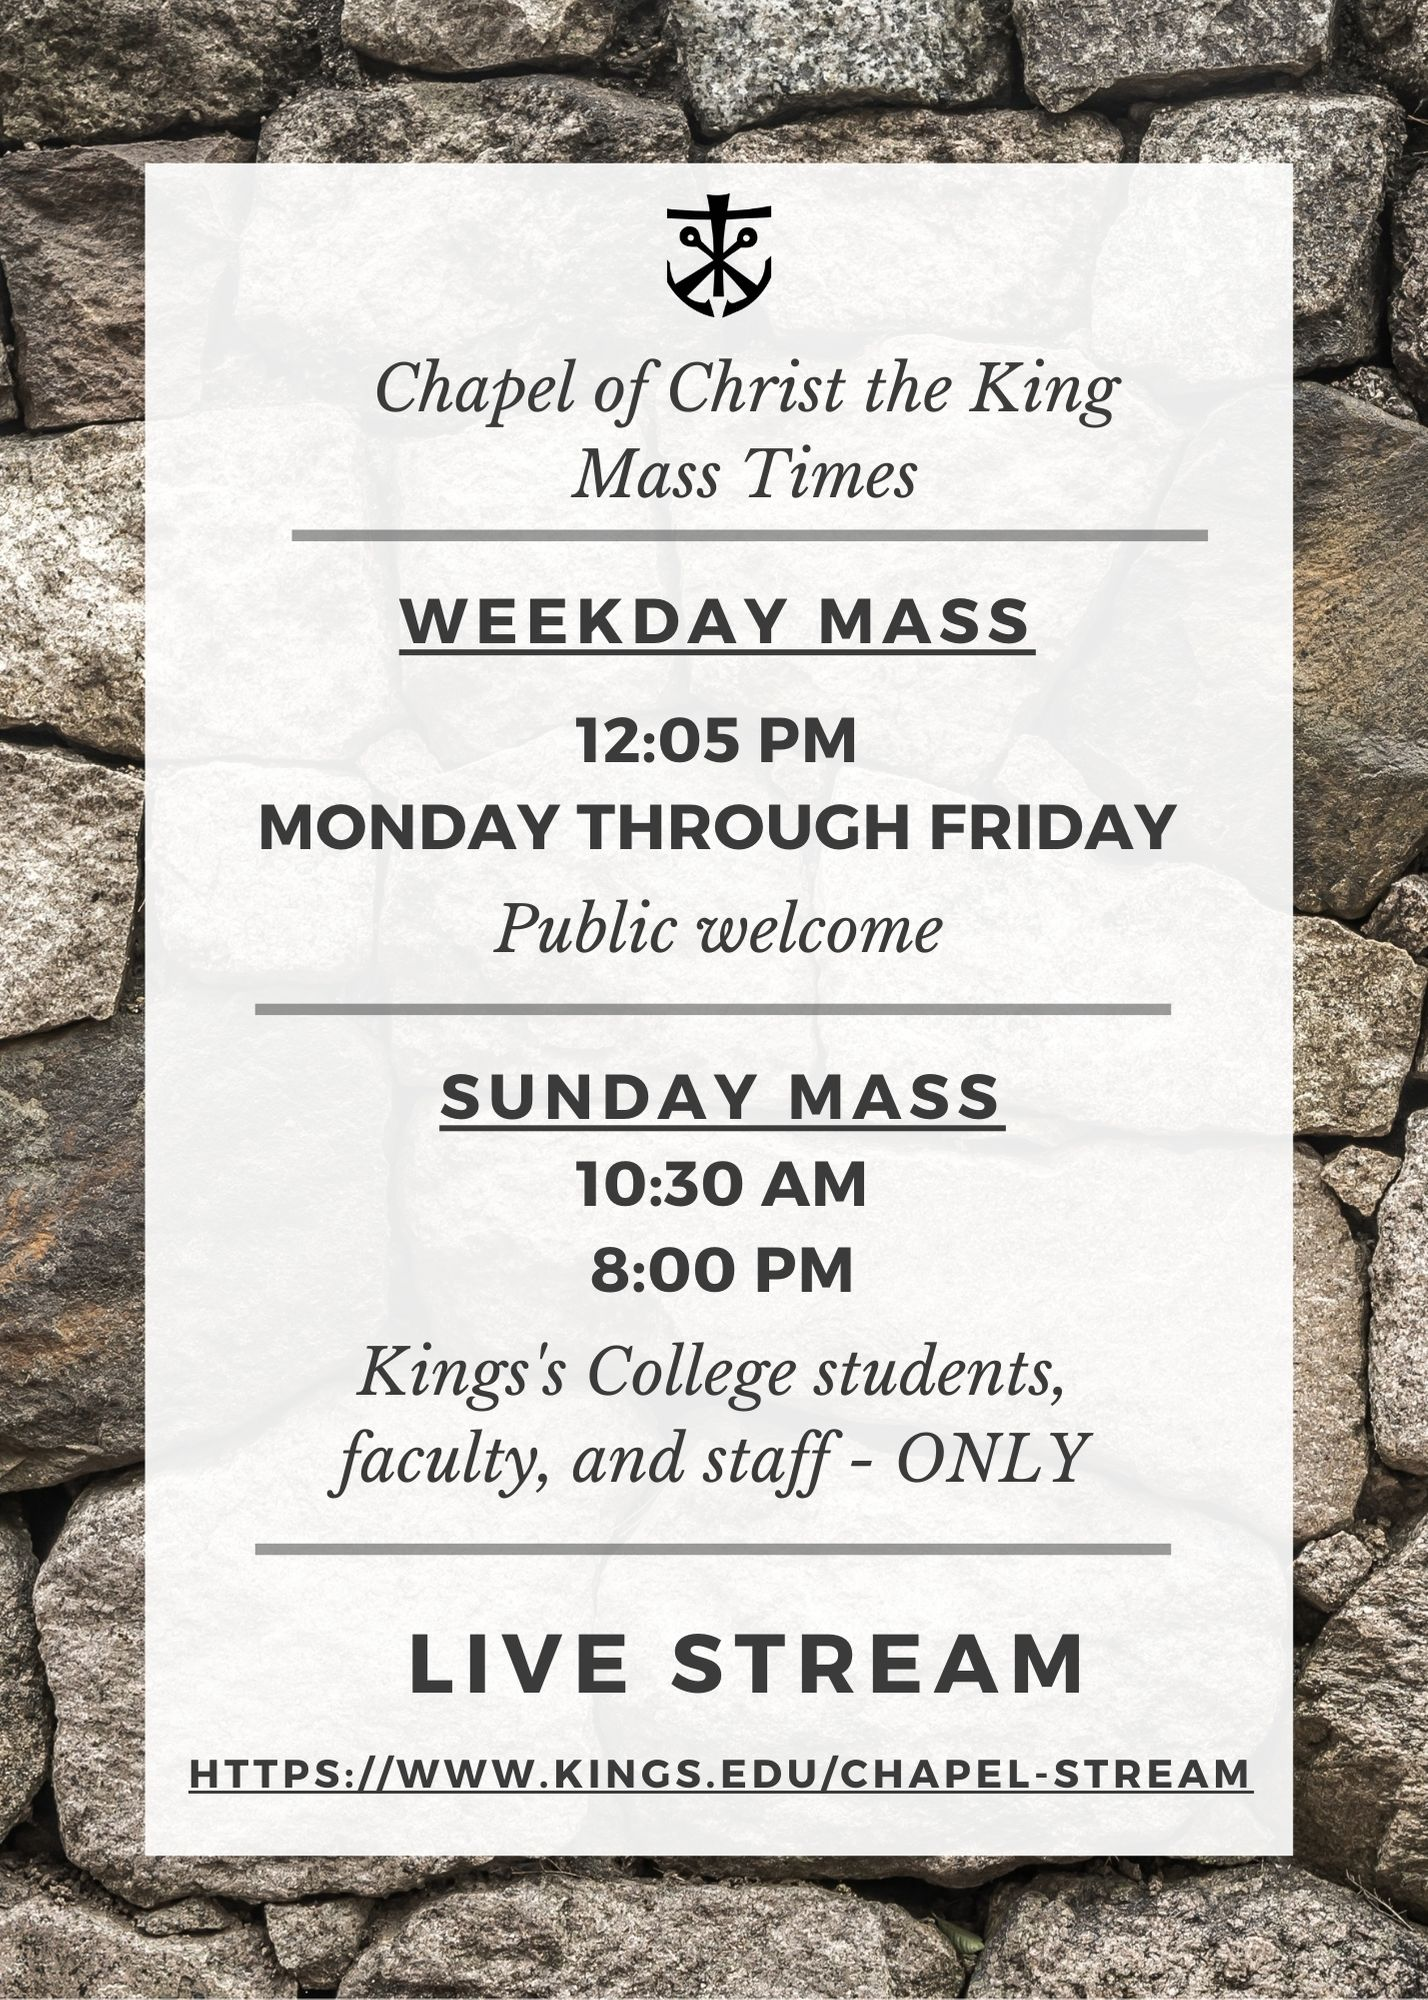 Mass Schedule for Chapel of Christ the King